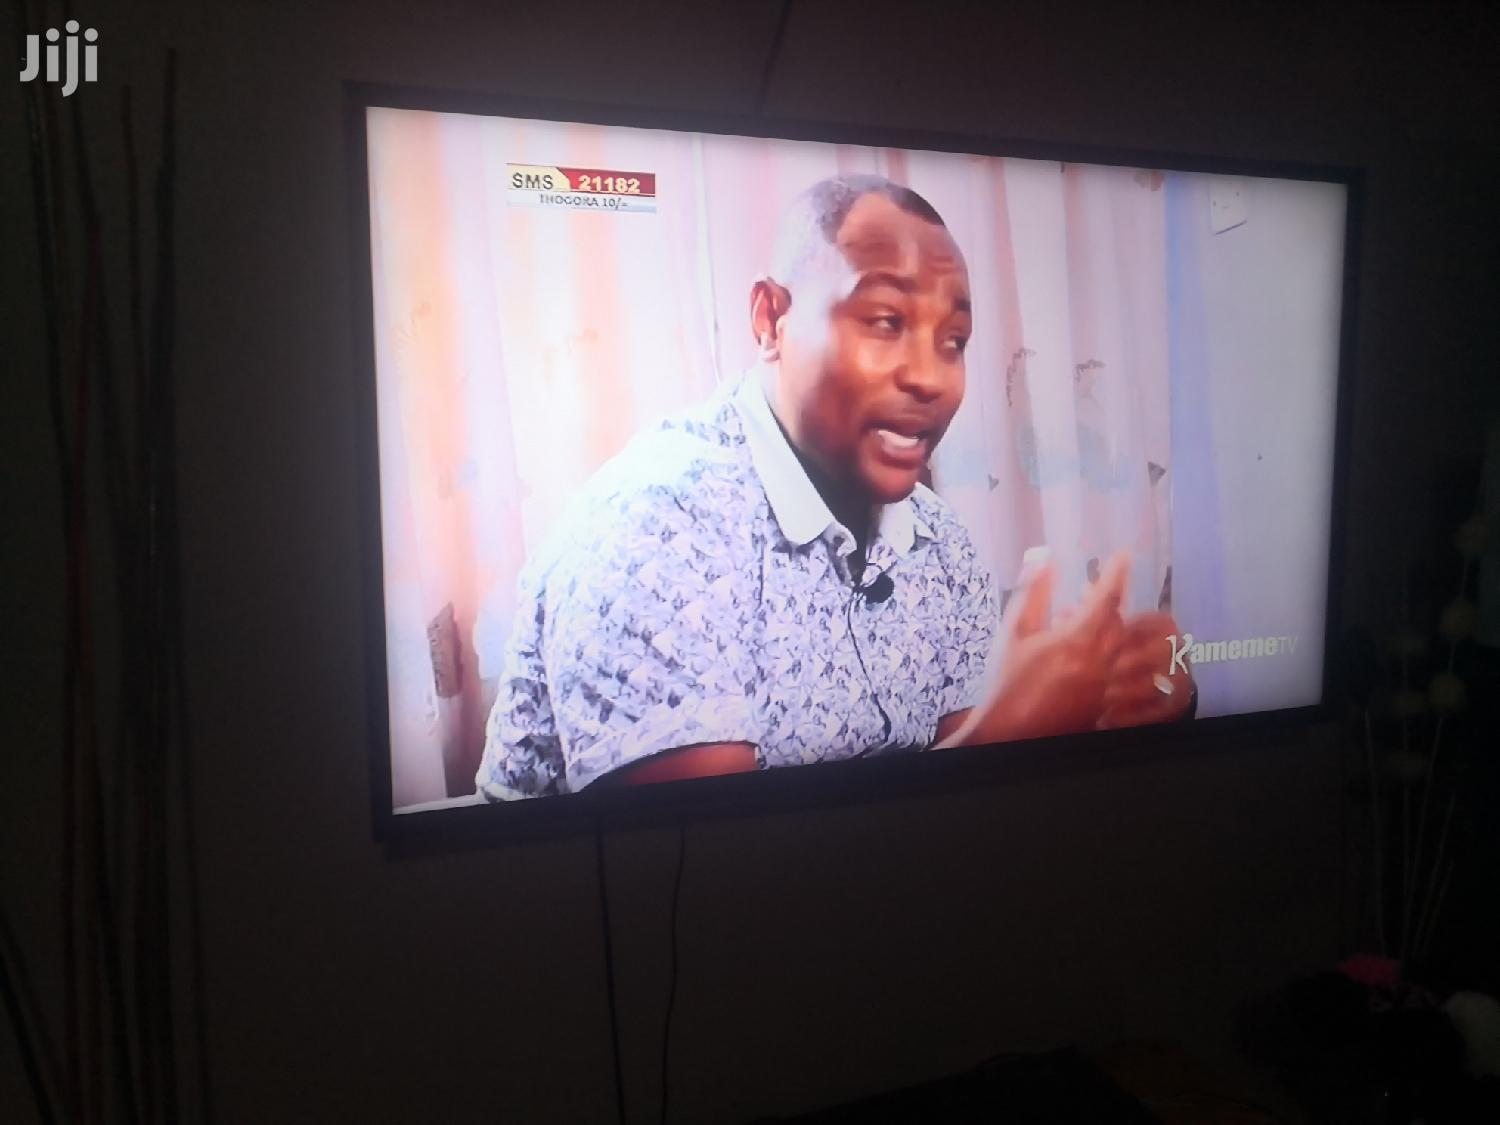 Archive: 43 Inch LG Digital TV Just New